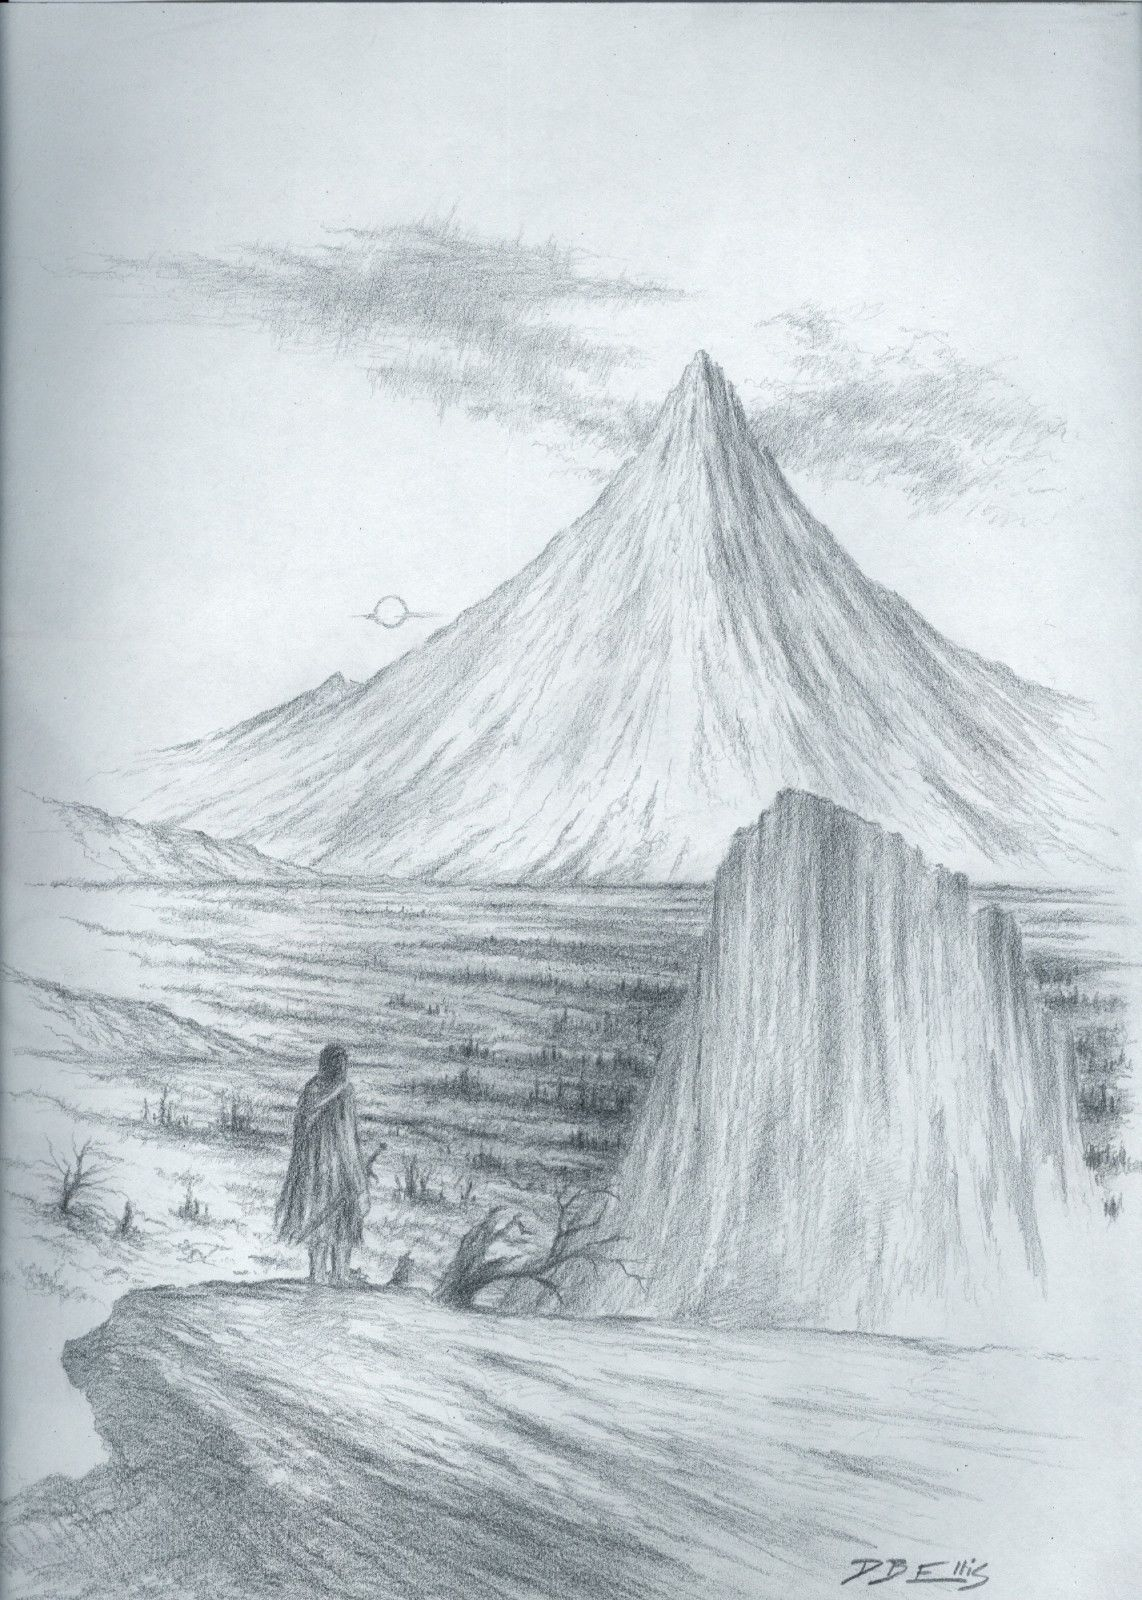 The Lonely Mountain 9x12 Inches Graphite On Paper Bilbo